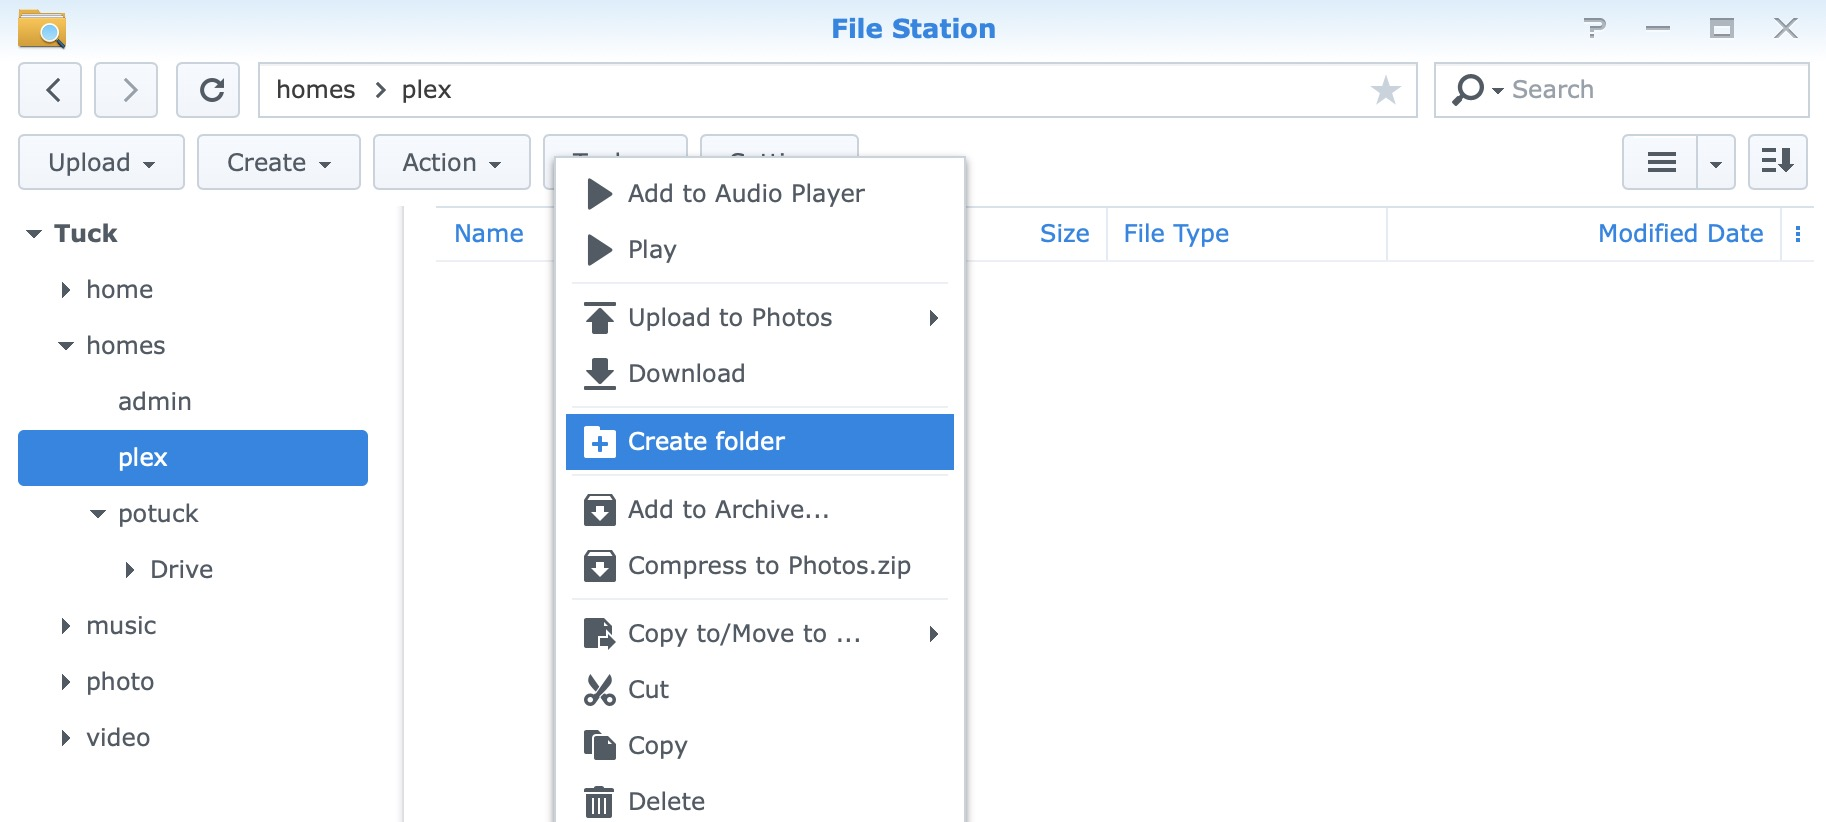 How to set up Plex on a Synology NAS drive - 9to5Mac